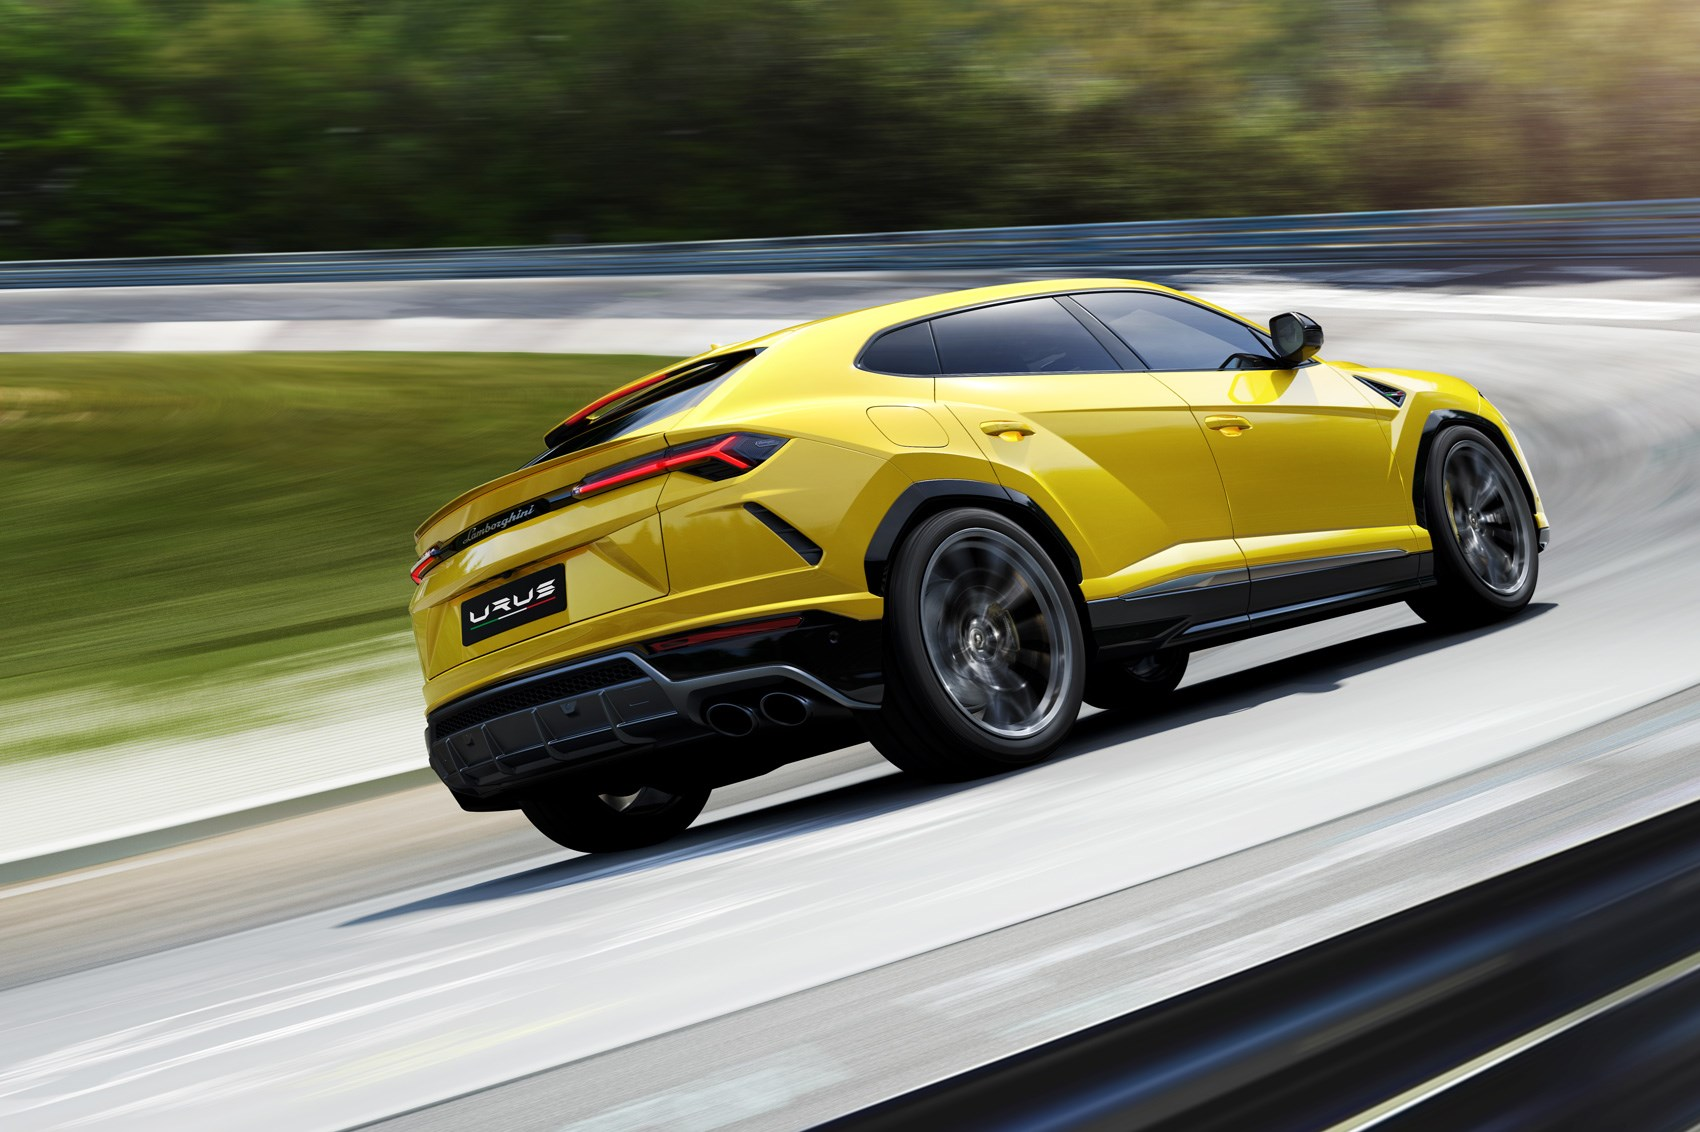 Lamborghini Urus (2018) SUV everything you need to know